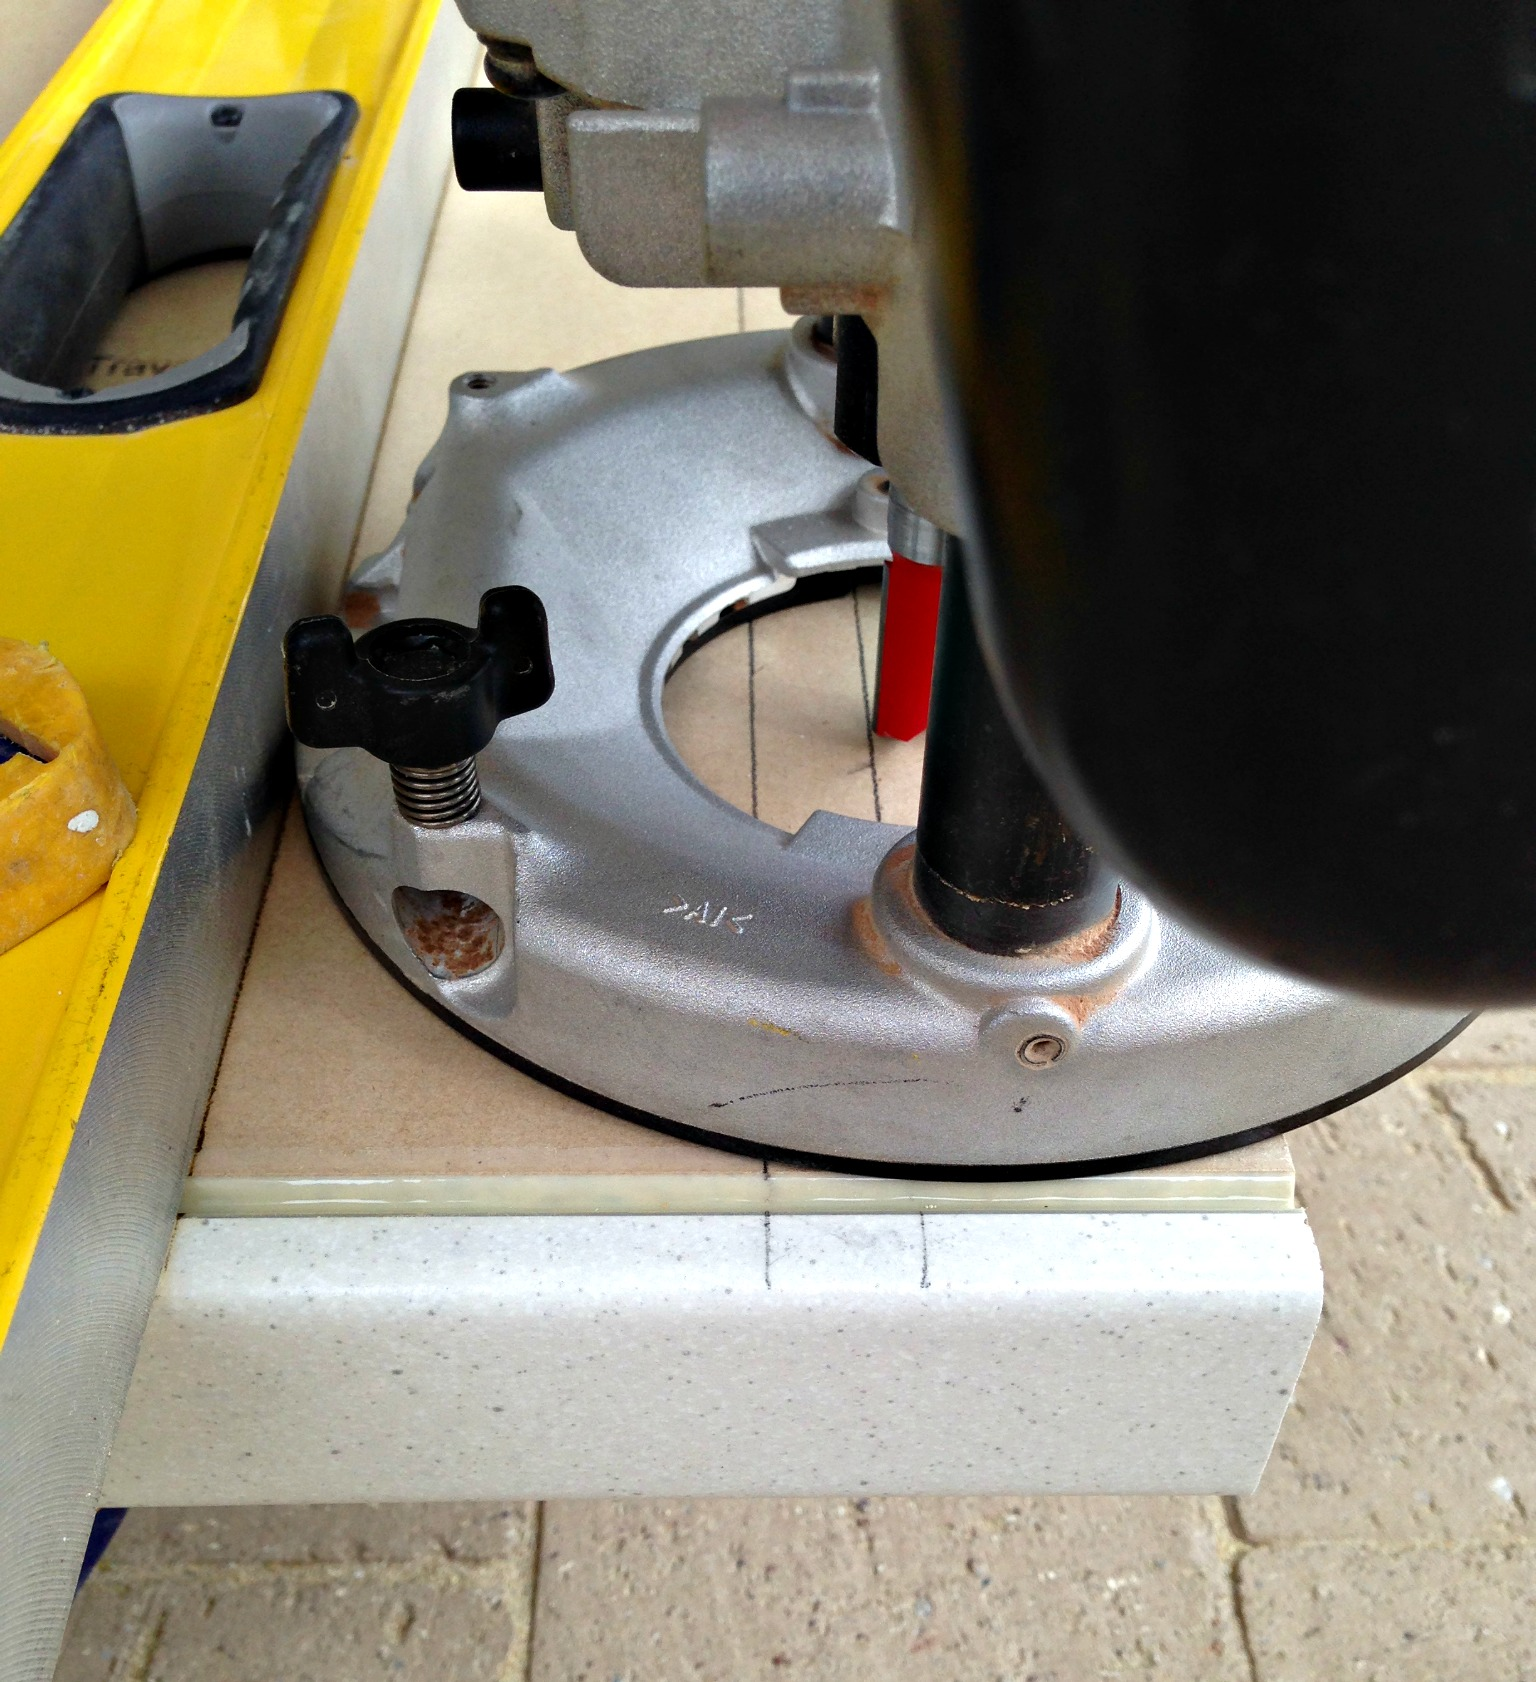 Cutting worktops to length